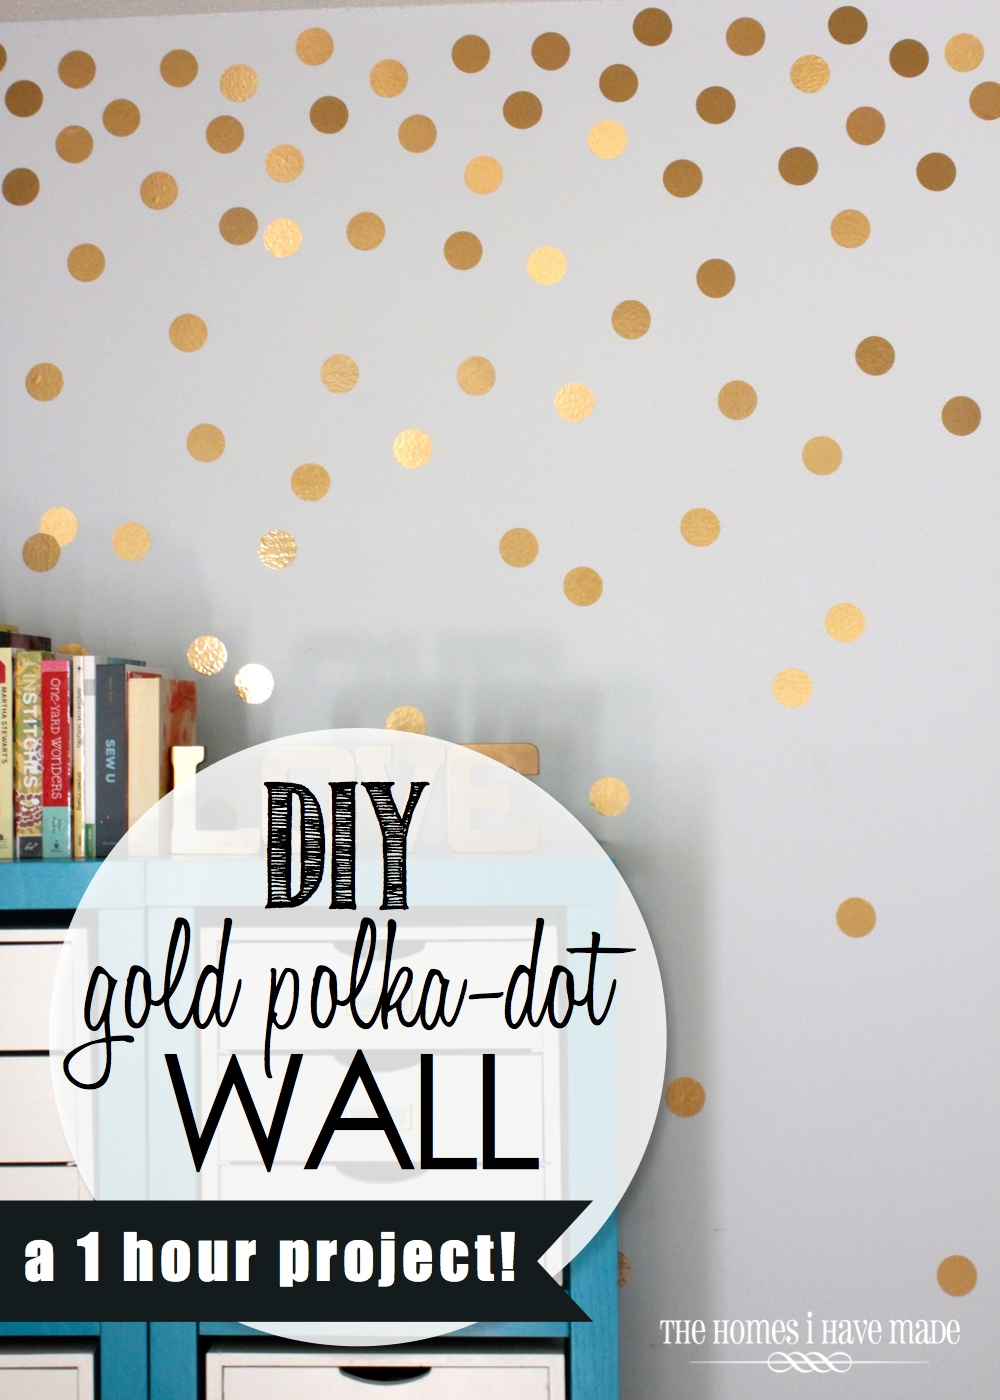 Diy gold polka dot wall the homes i have made i first fell in love with this idea when i came across this amazing coral dresser and its gold polka dotted backdrop bottom left amipublicfo Images